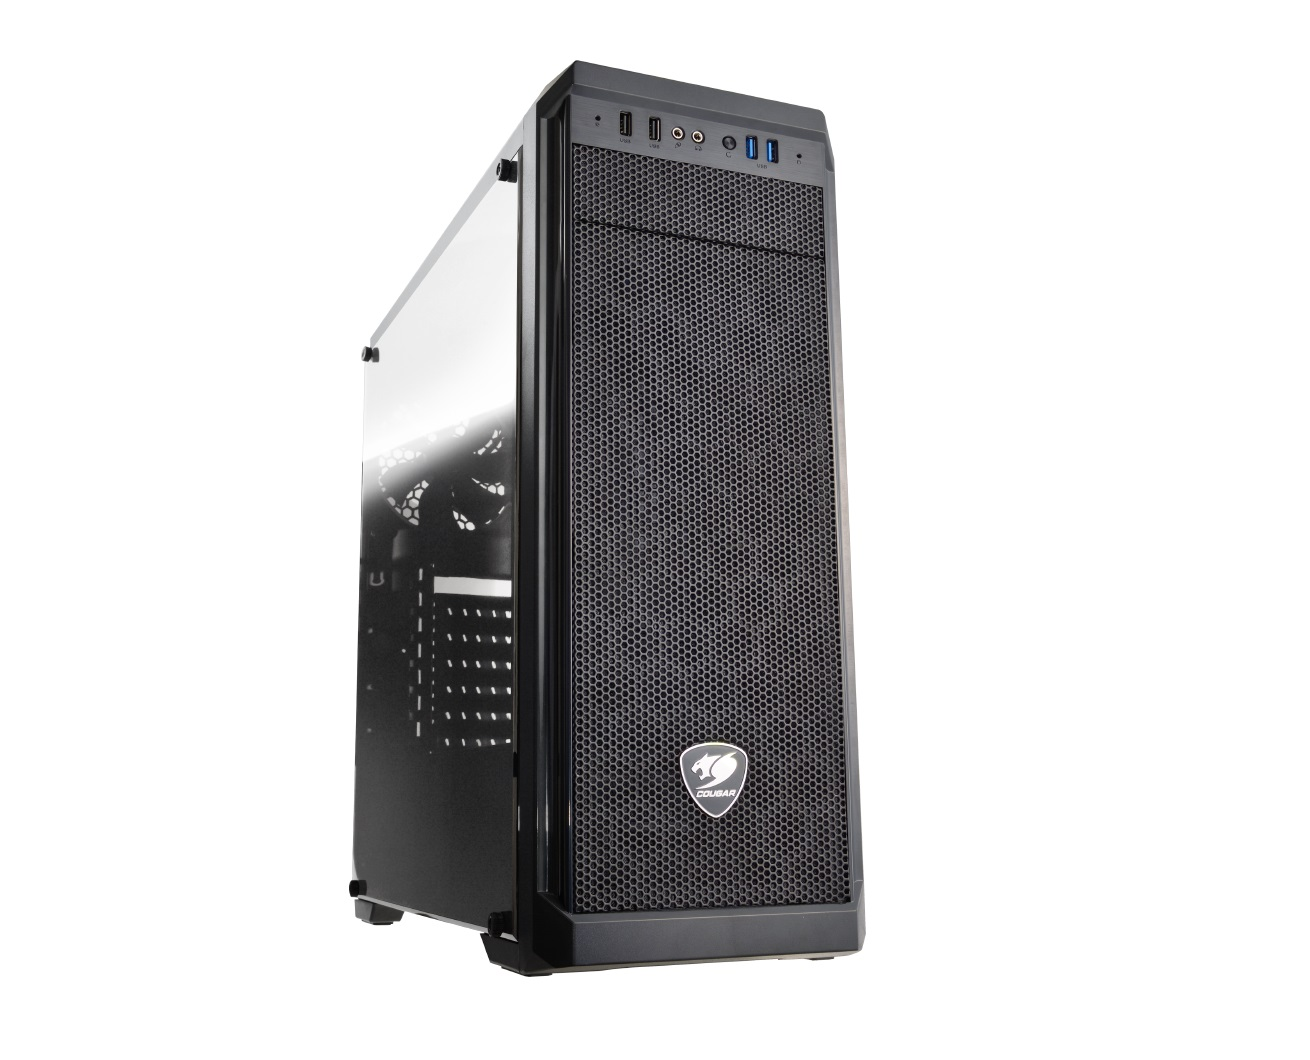 CC-COUGAR Case MX330-G Middle ATX Black Tempered Glass USB 3.0